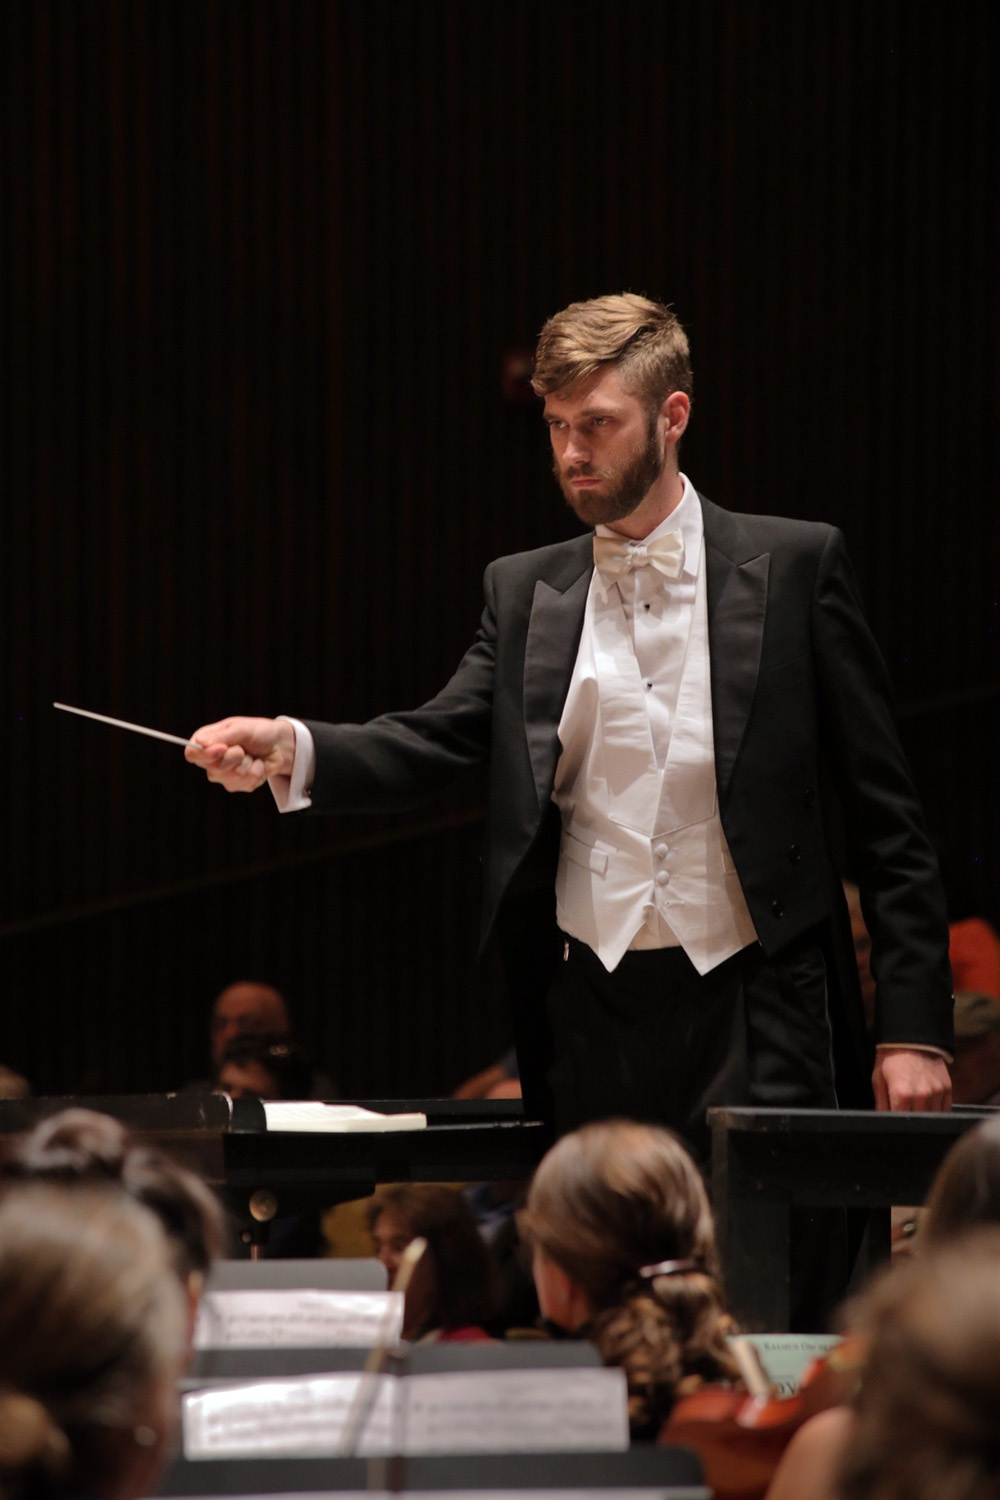 s17-ericC Eric Choate, assistant conductor,  BCCO Spring Concert,  Hertz Hall,  Berkeley,  California, 2017